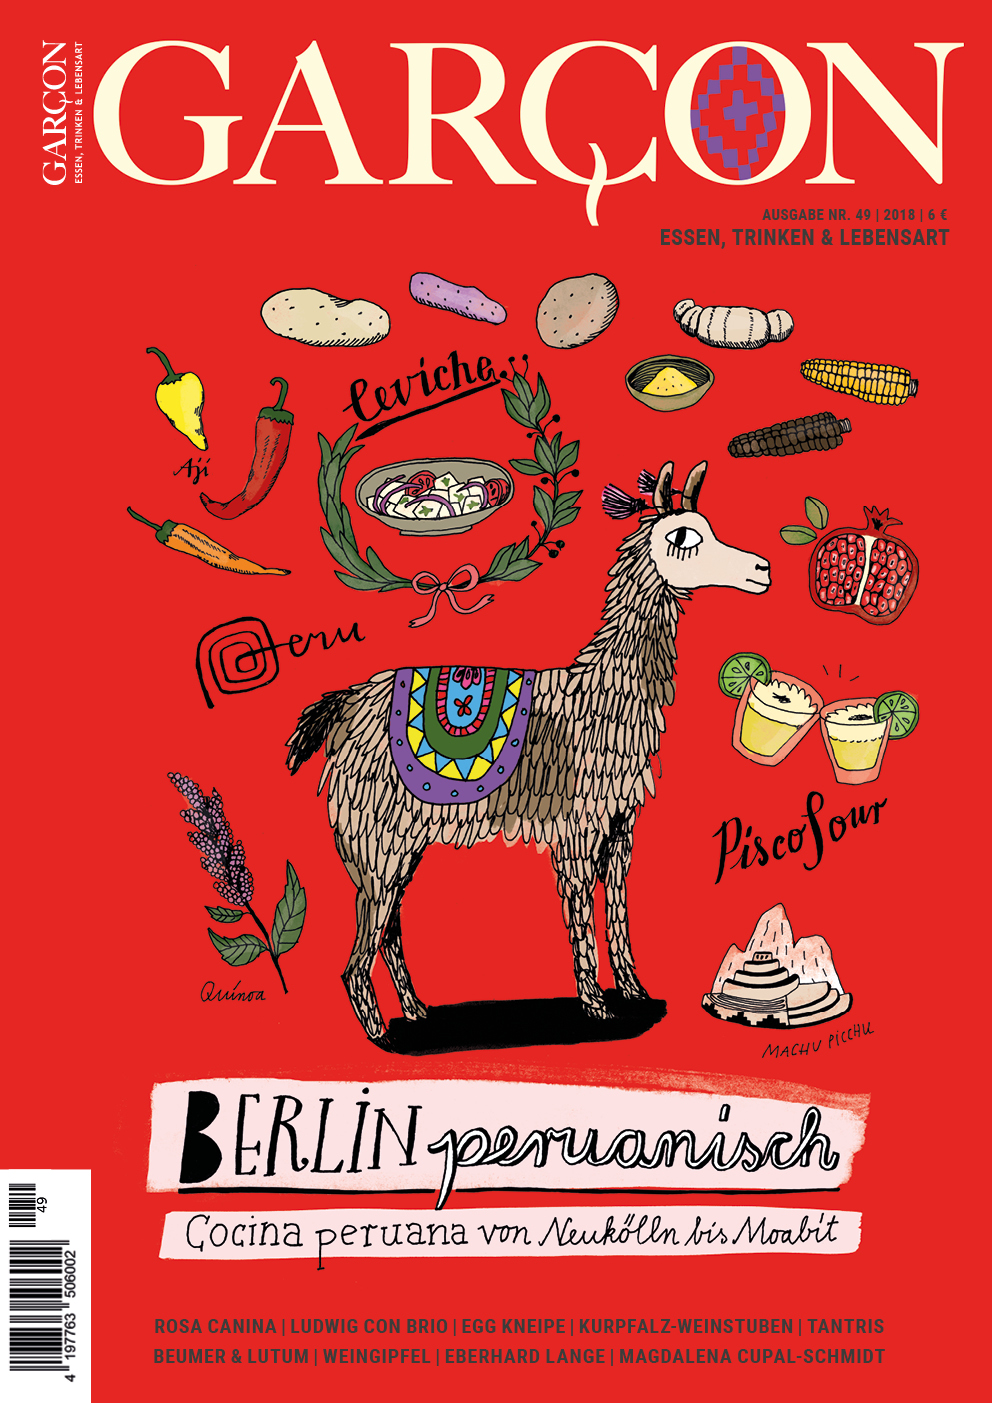 Magazin GARCON - Essen, Trinken, Lebensart Nr. 49 - Cover